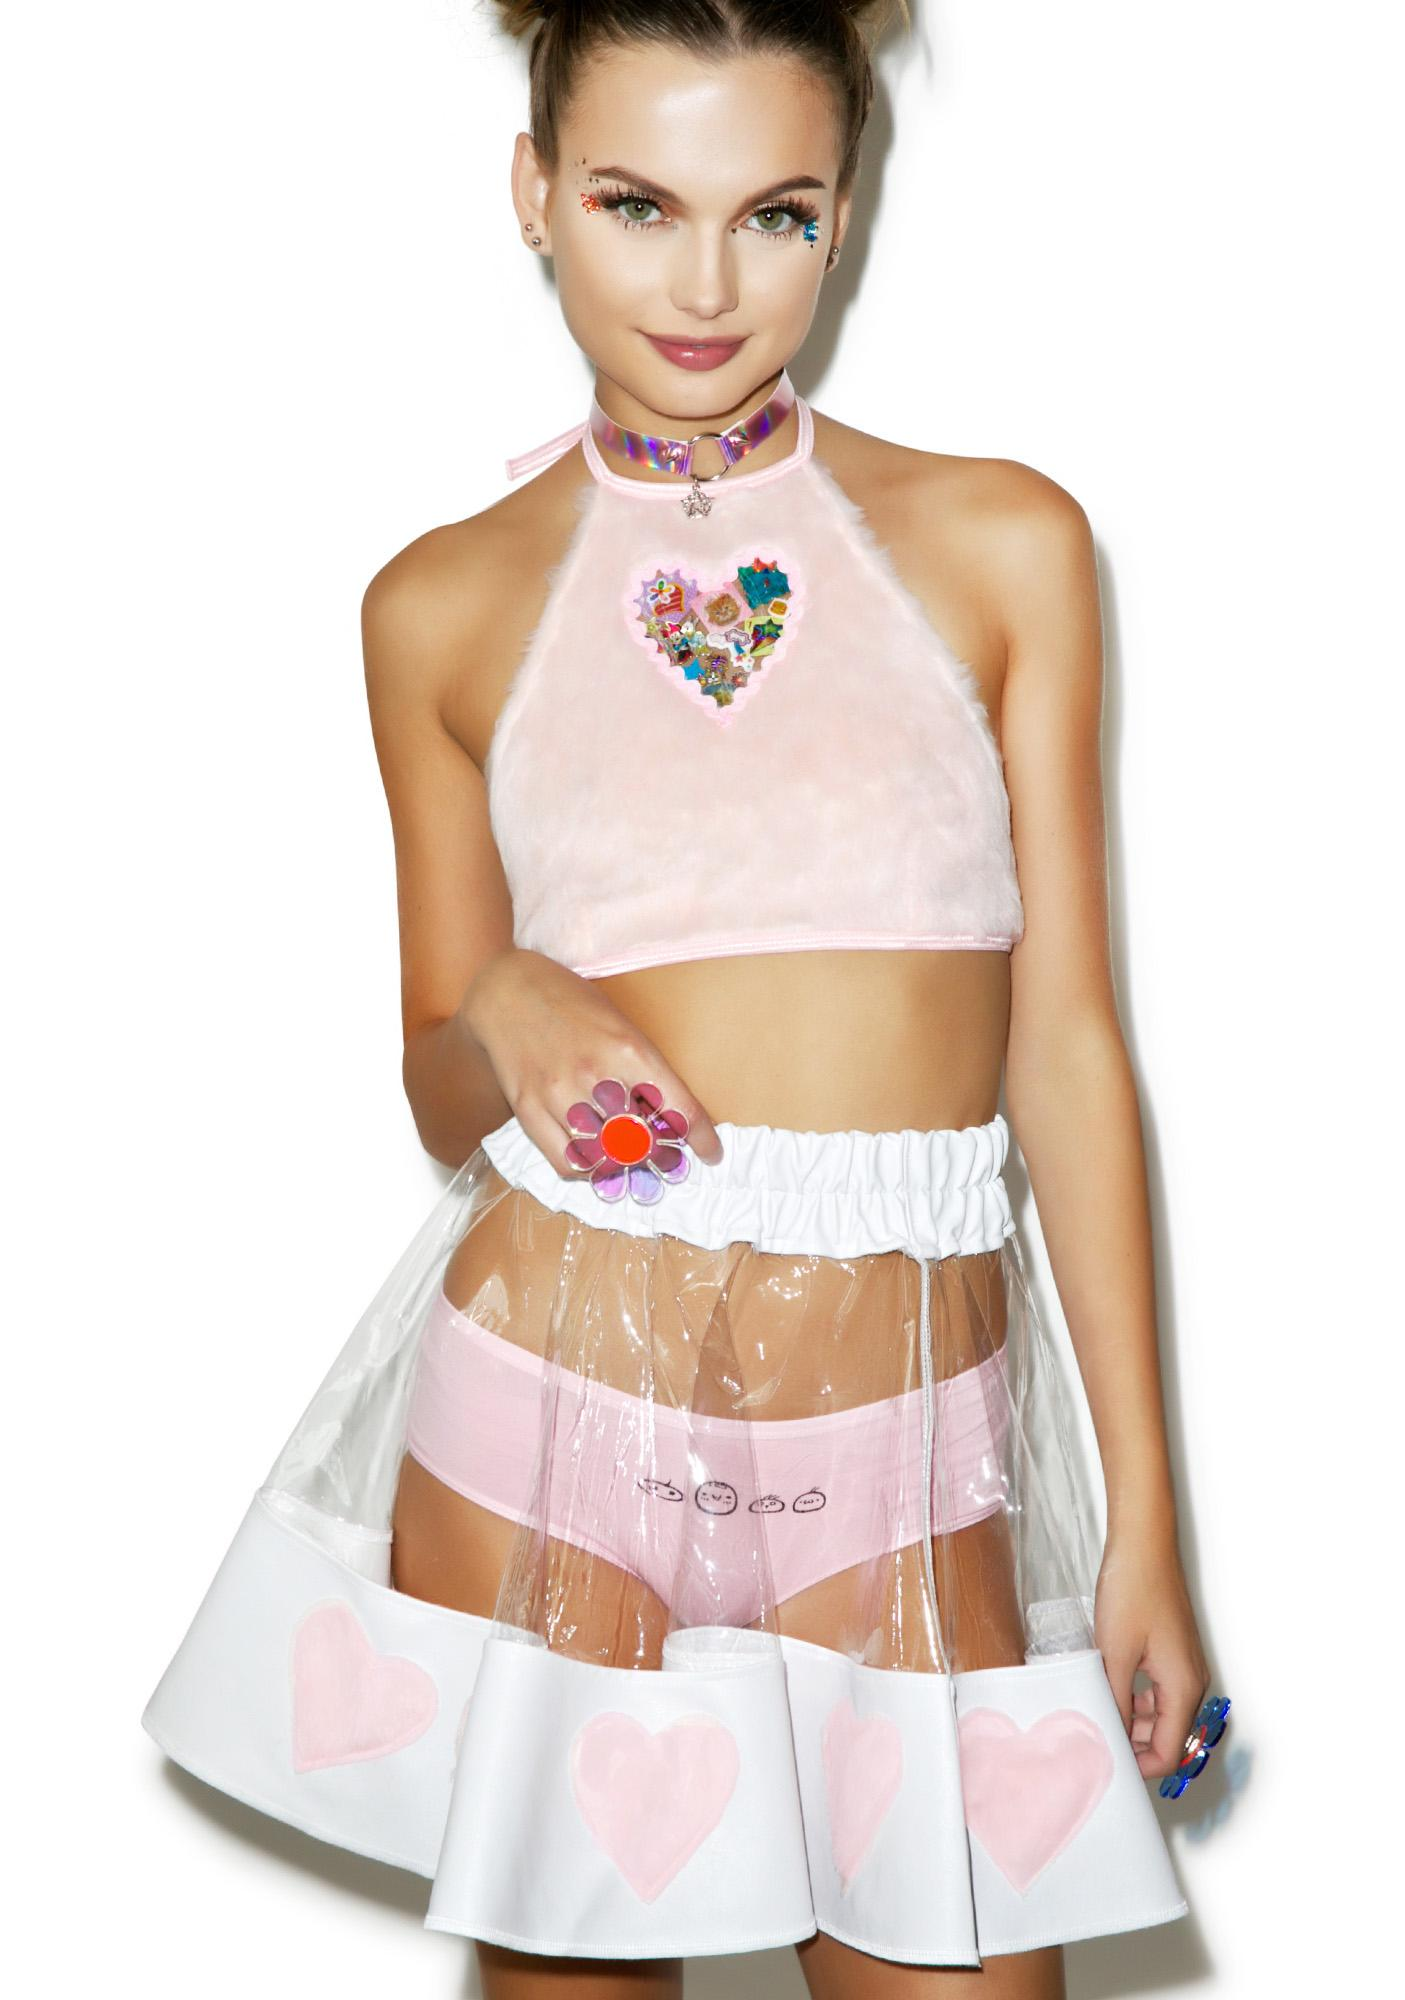 Indyanna Courtney PVC Heart Skirt